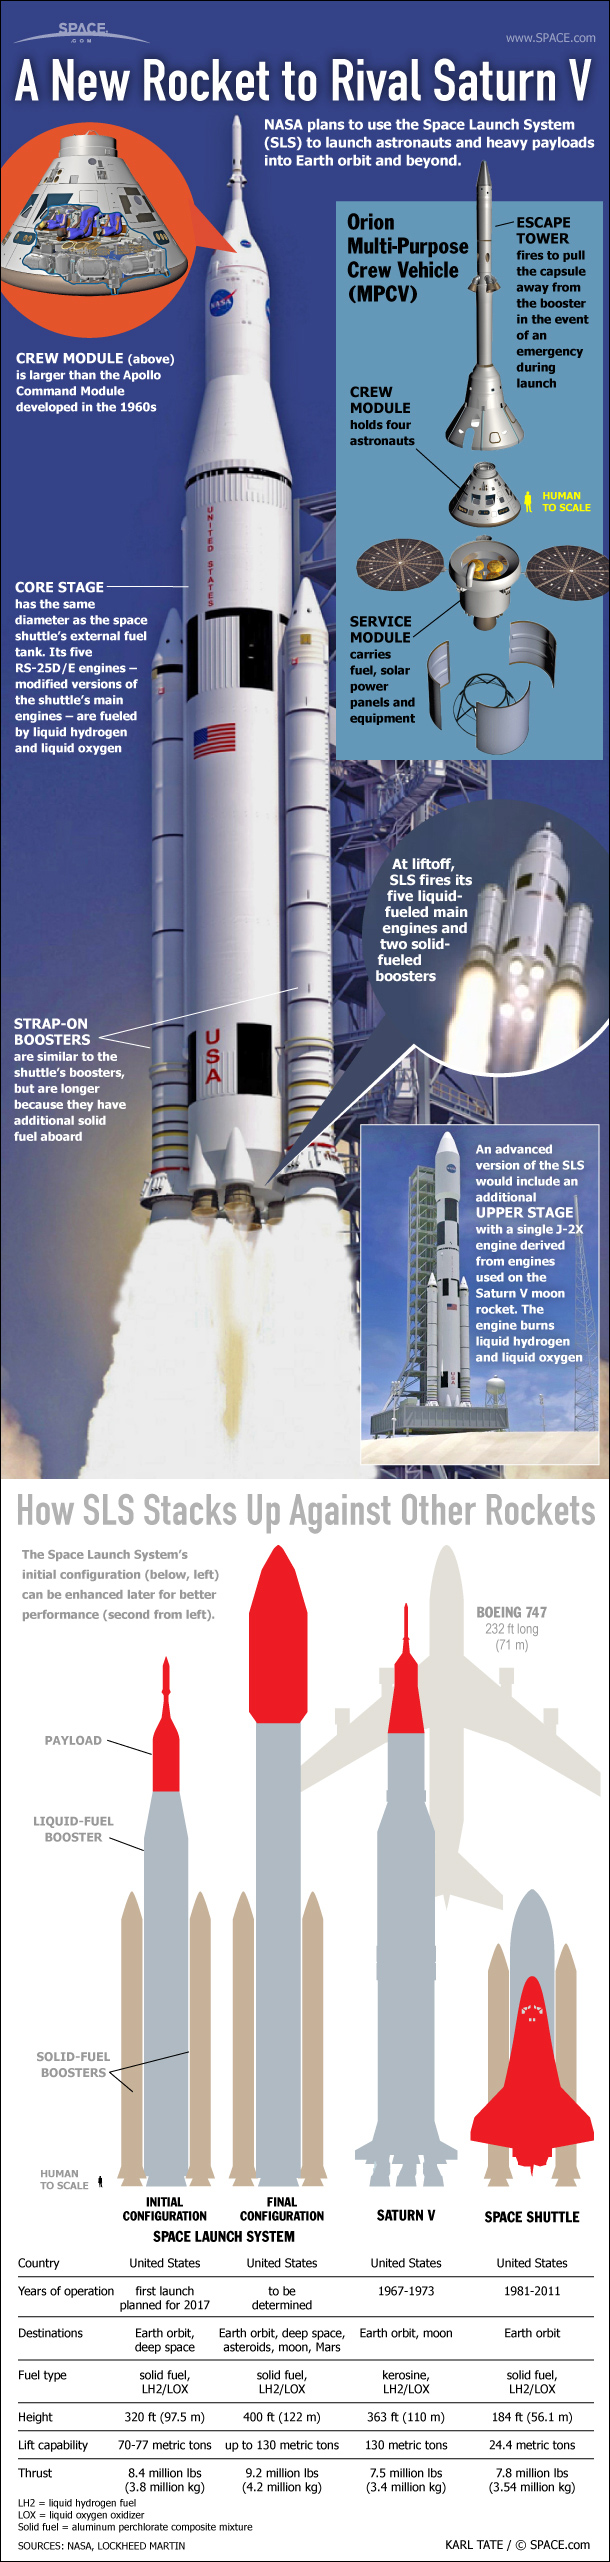 The SLS is derived from proven technology used for decades in America's moon program and the space shuttle.